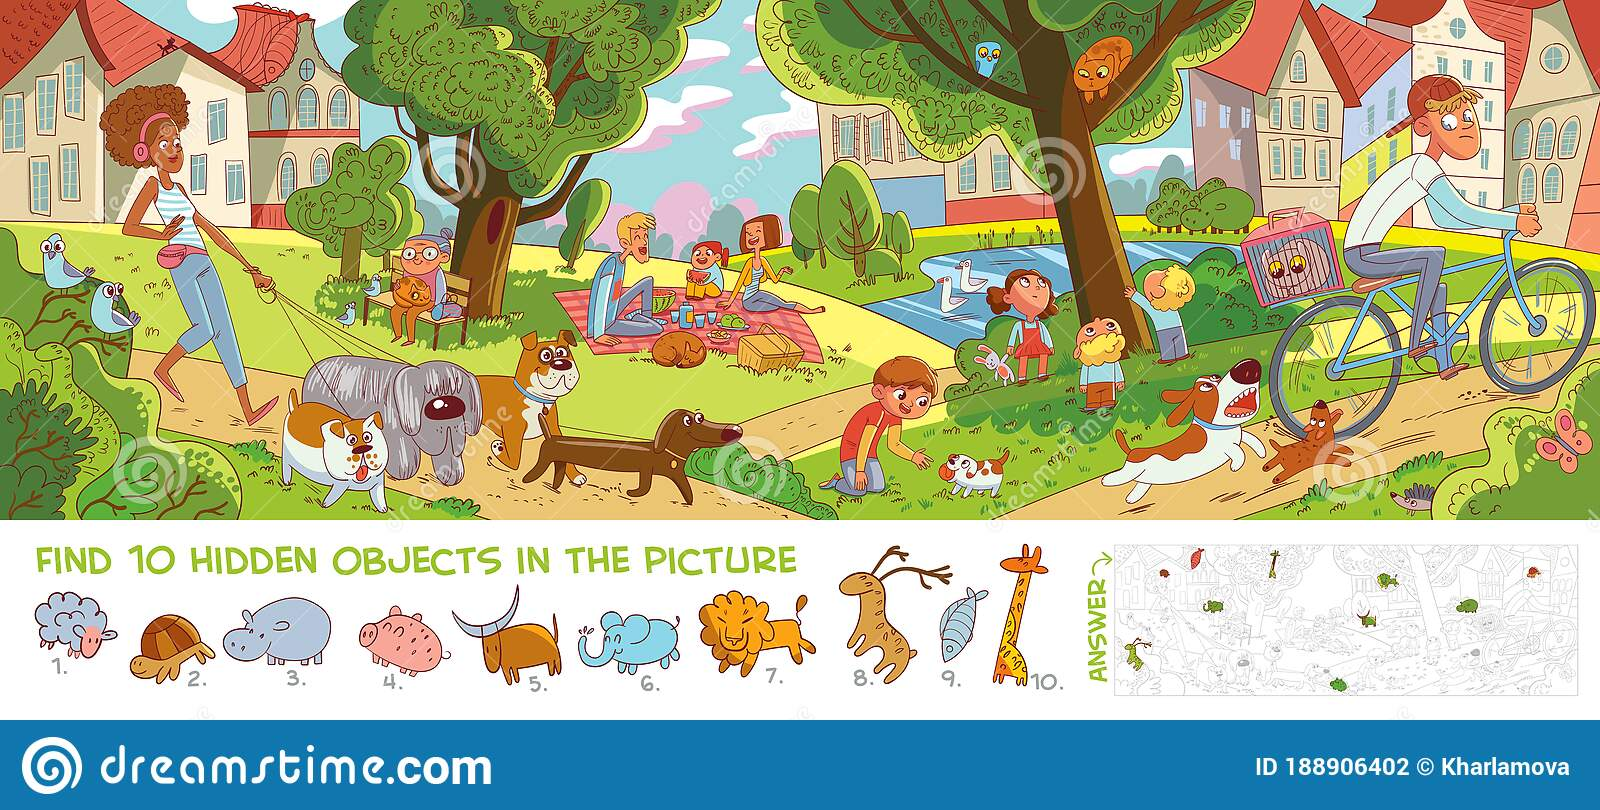 Find Hidden Objects Picture Stock Illustrations 303 Find Hidden Objects Picture Stock Illustrations Vectors Clipart Dreamstime